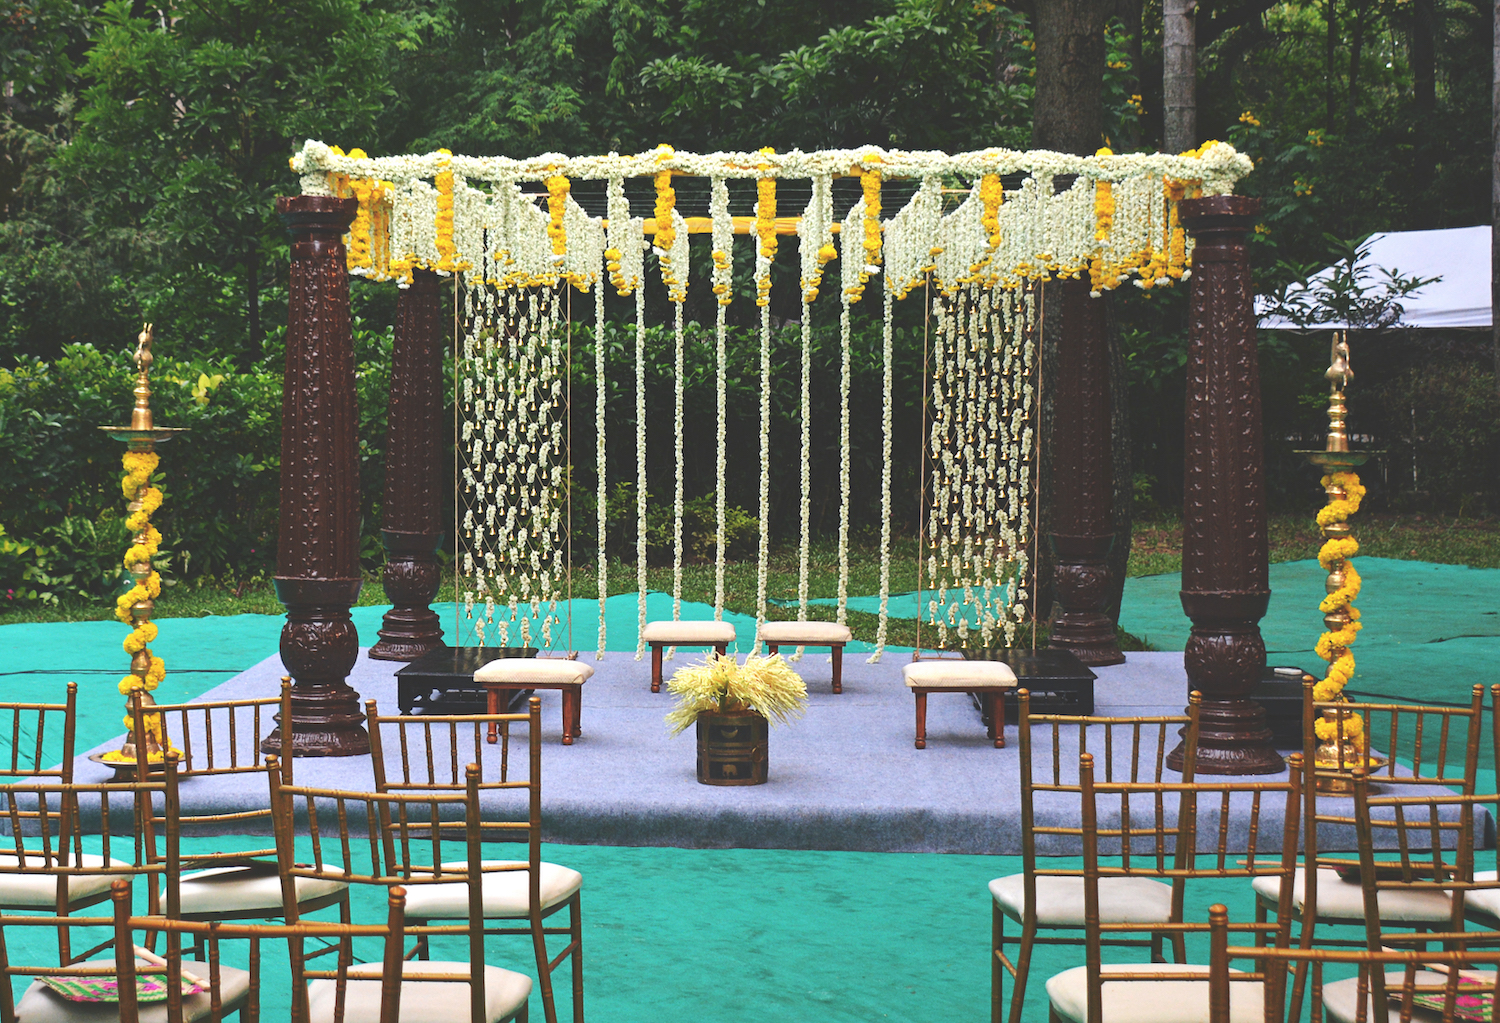 Wooden Mandap Decorated with bells, marigolds & tuberoses for south Indian wedding